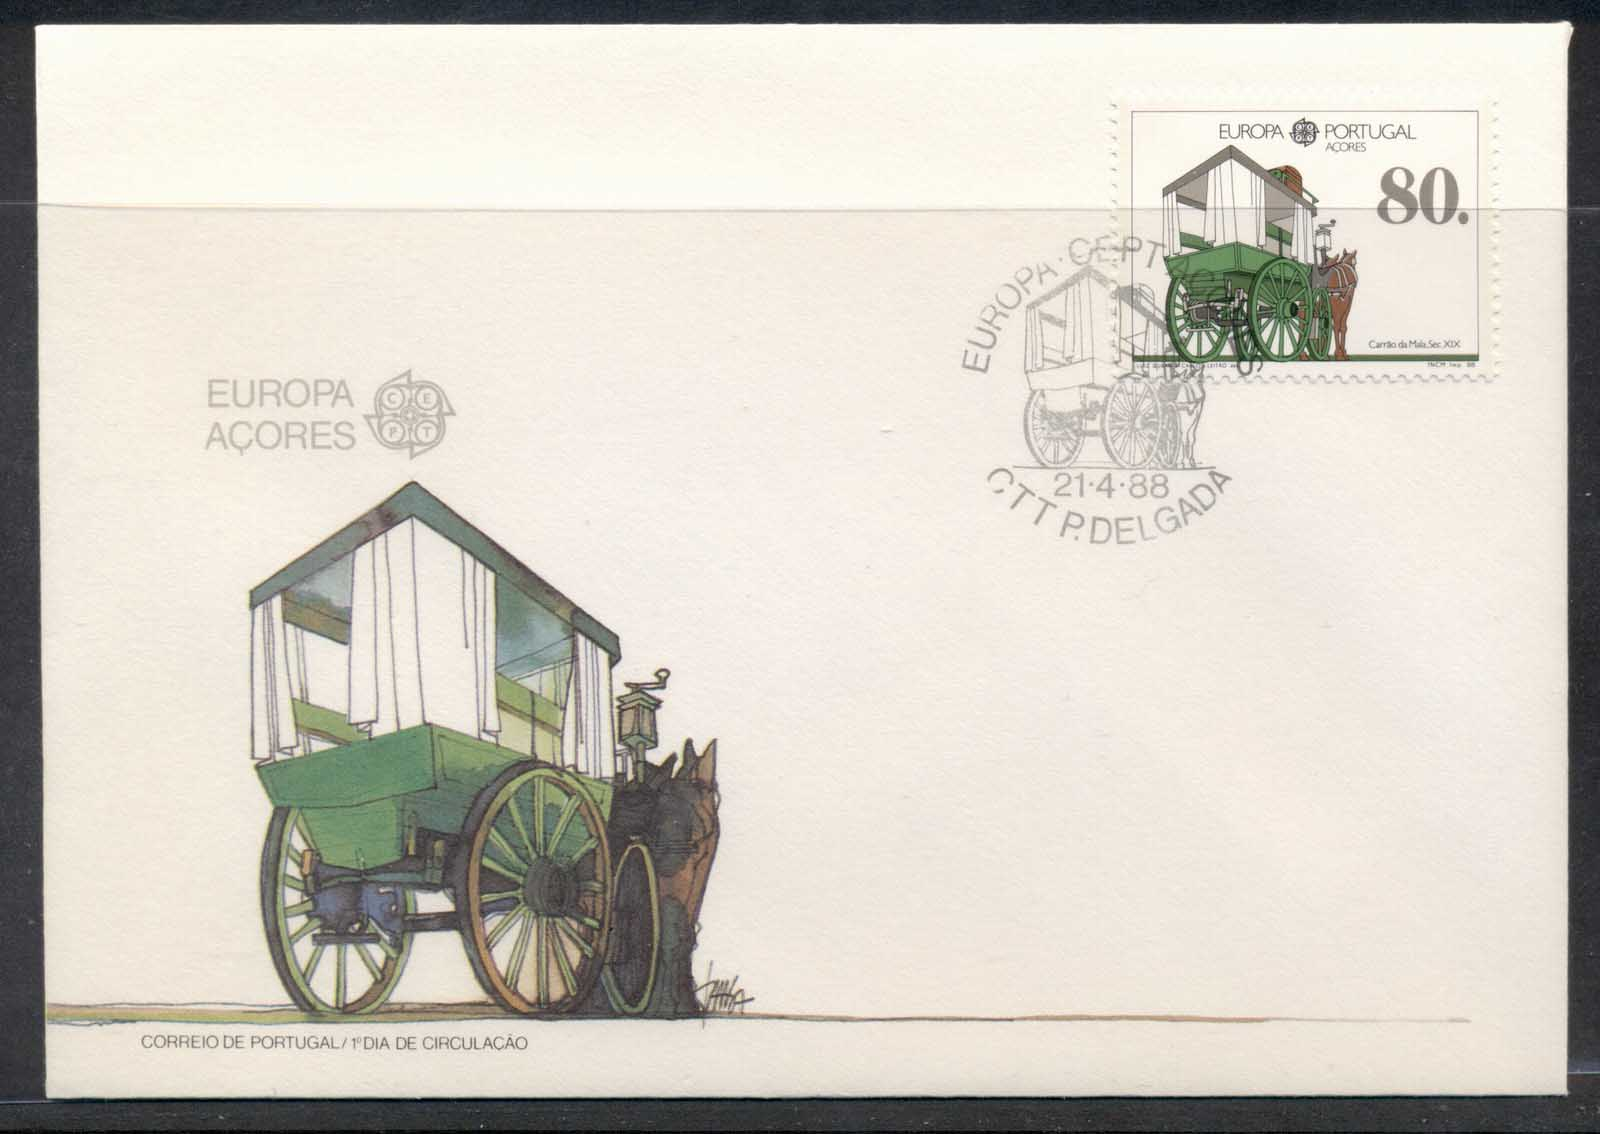 Azores 1988 Europa Transport & Communication FDC